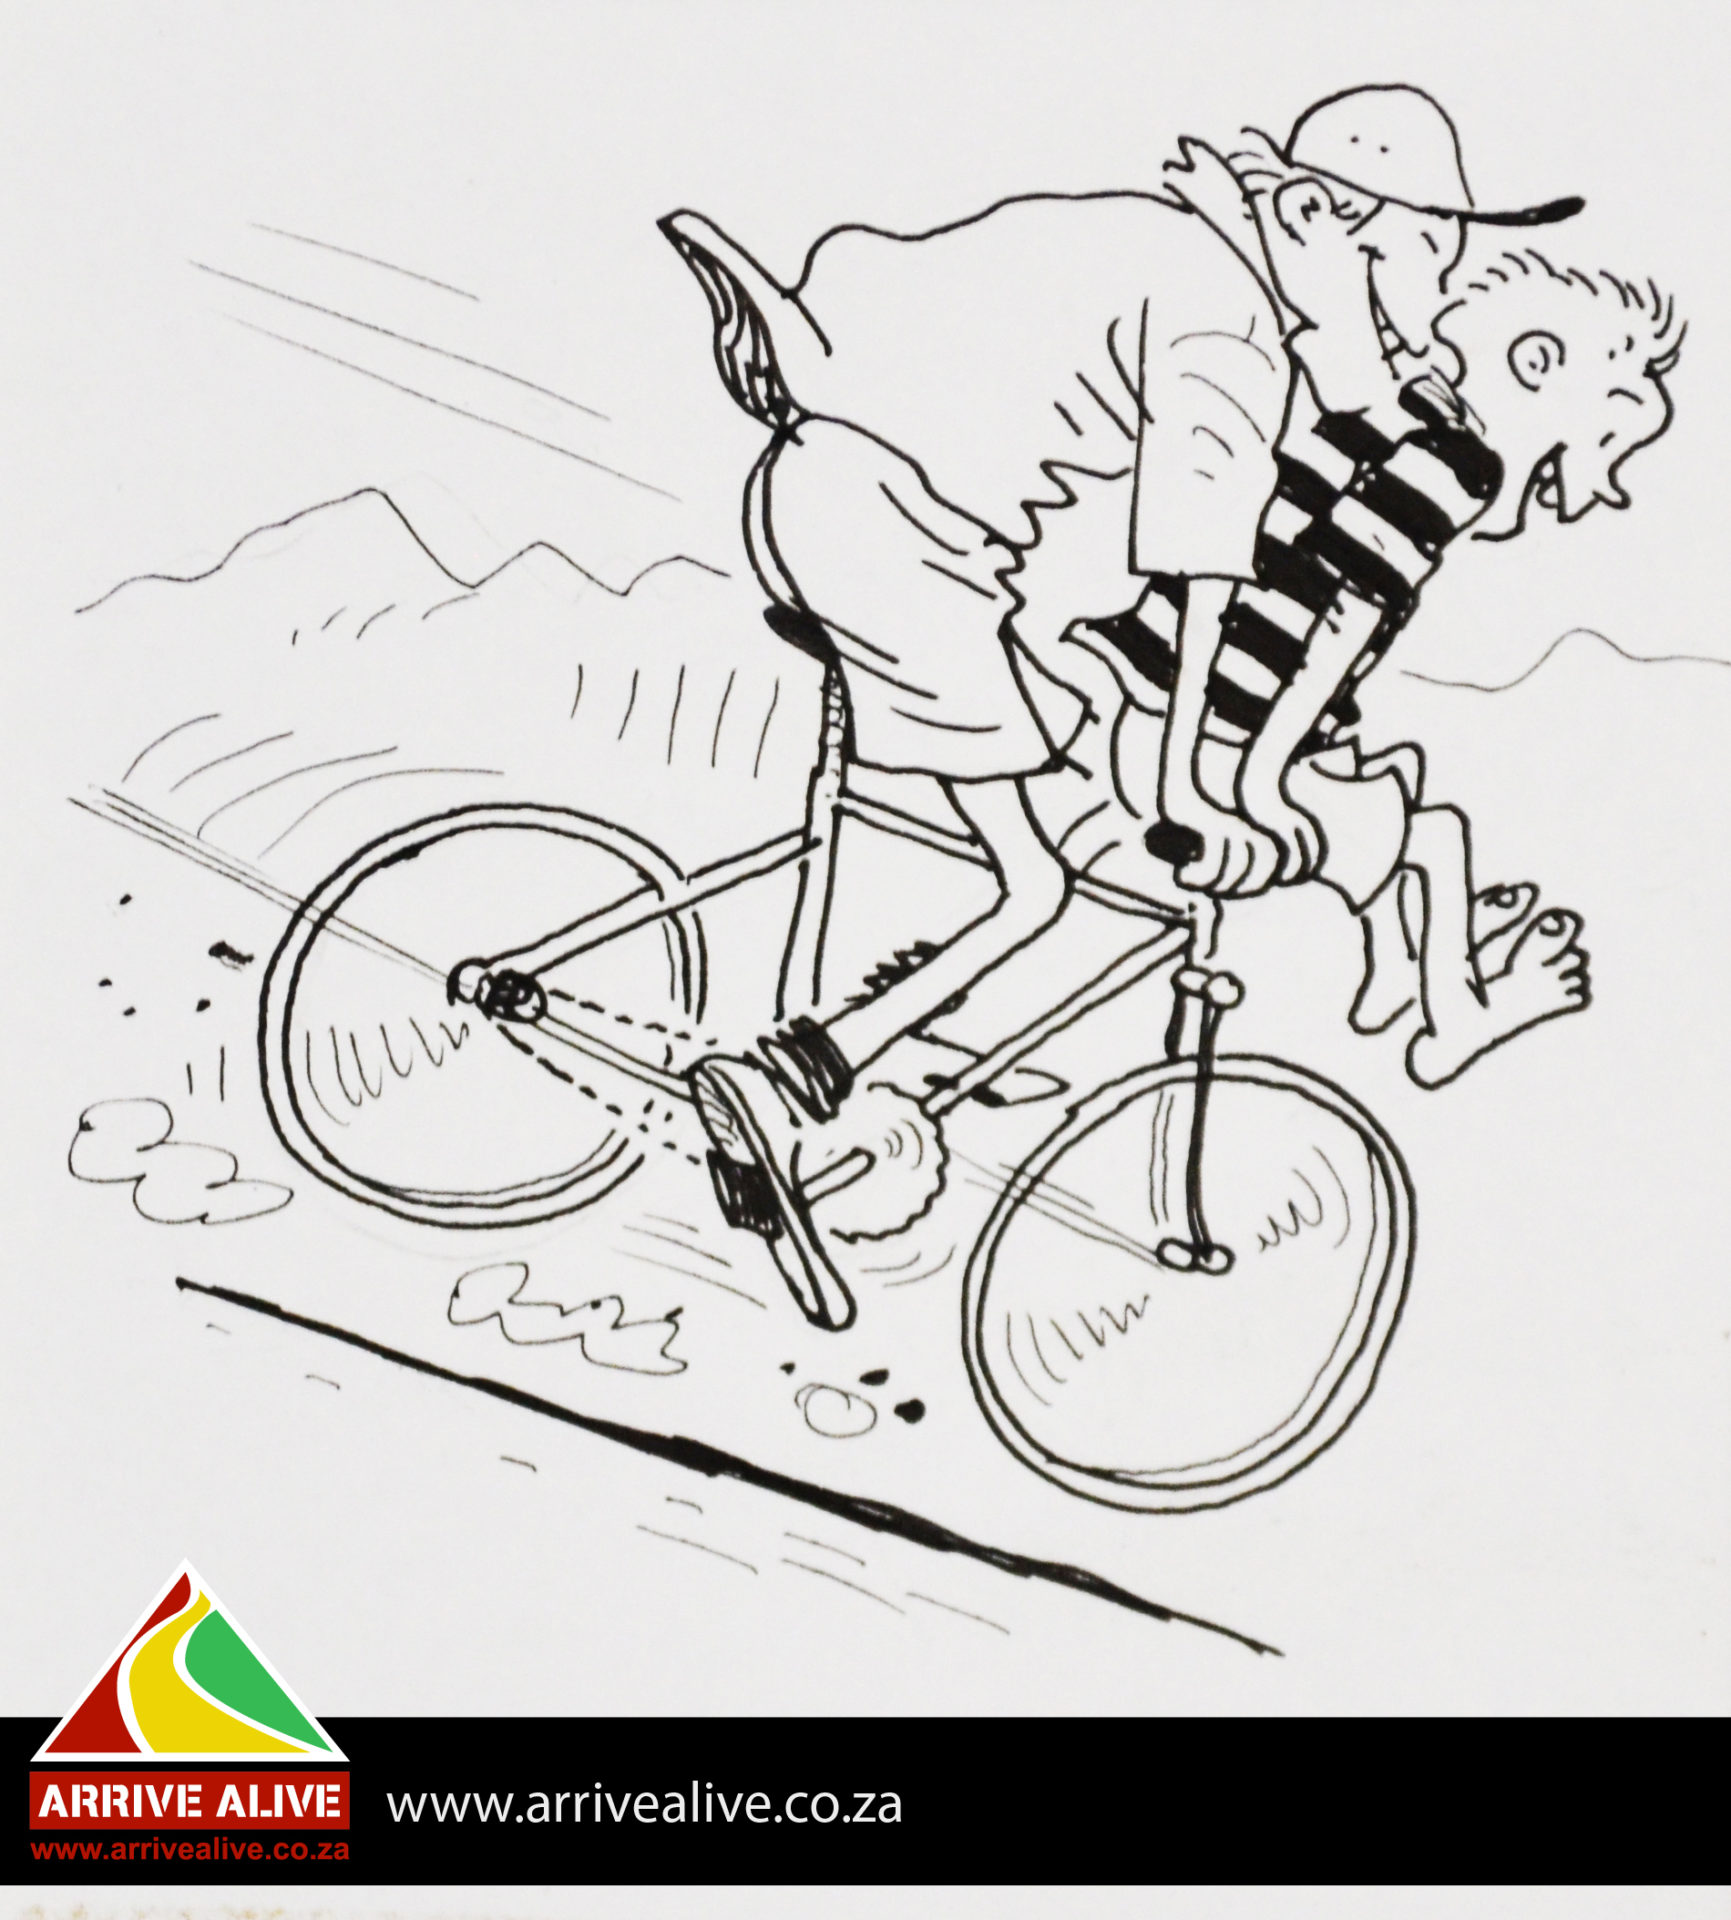 Is it legal for a cyclist to be carrying a passenger on a